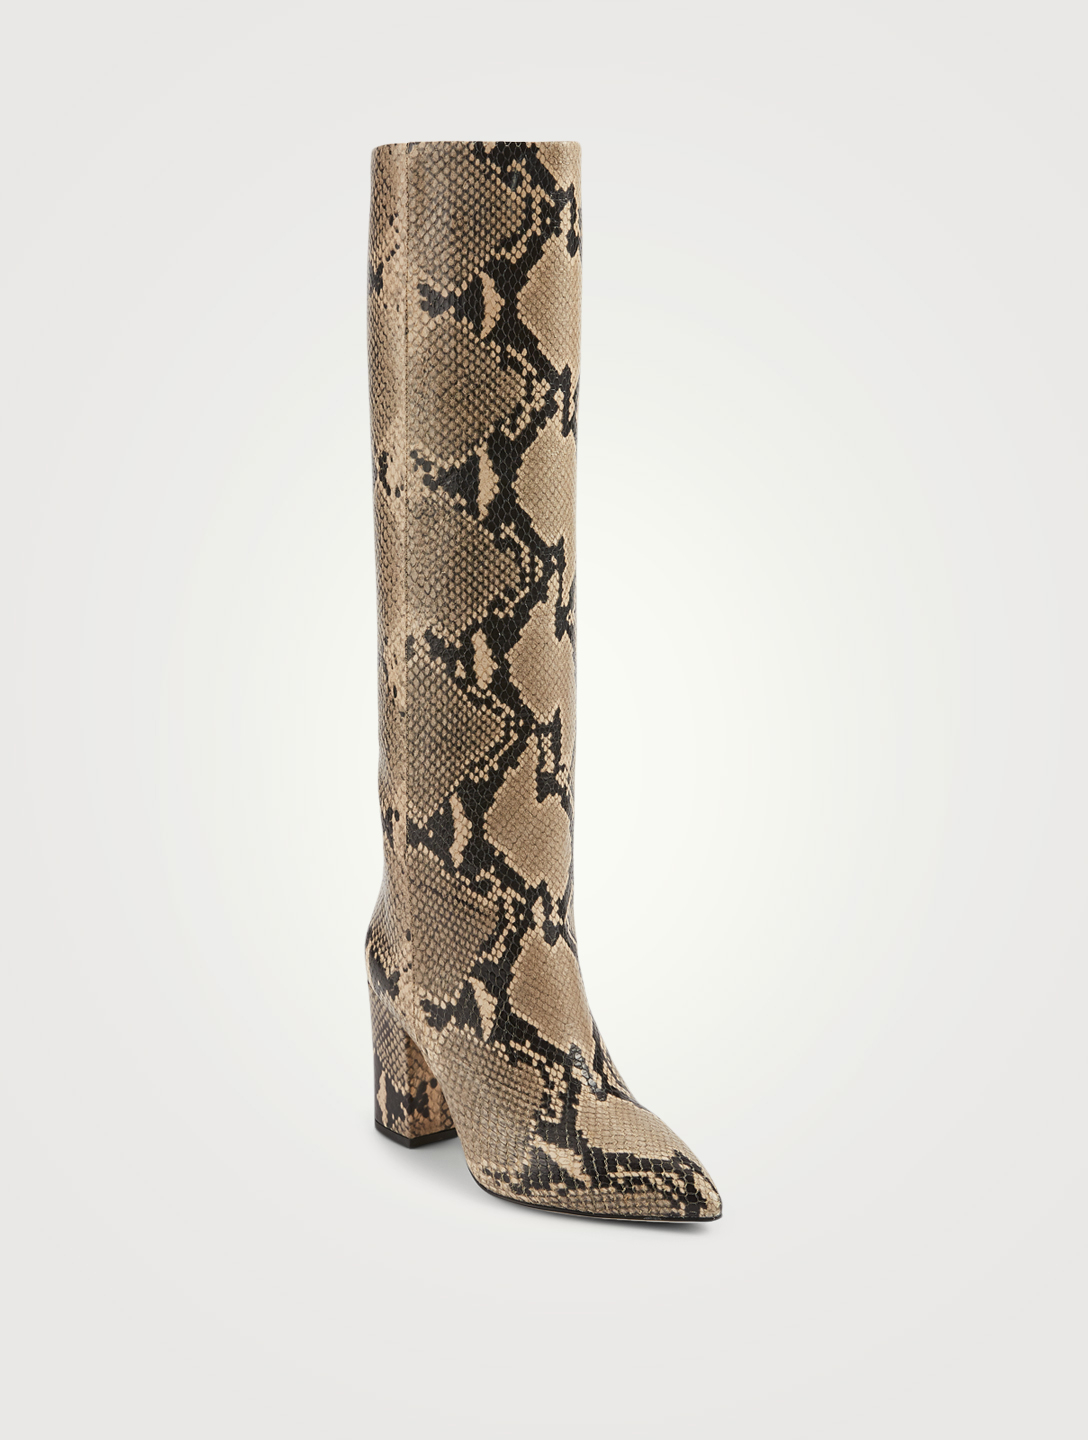 PARIS TEXAS Leather Heeled Knee-High Boots In Python Print Women's Beige